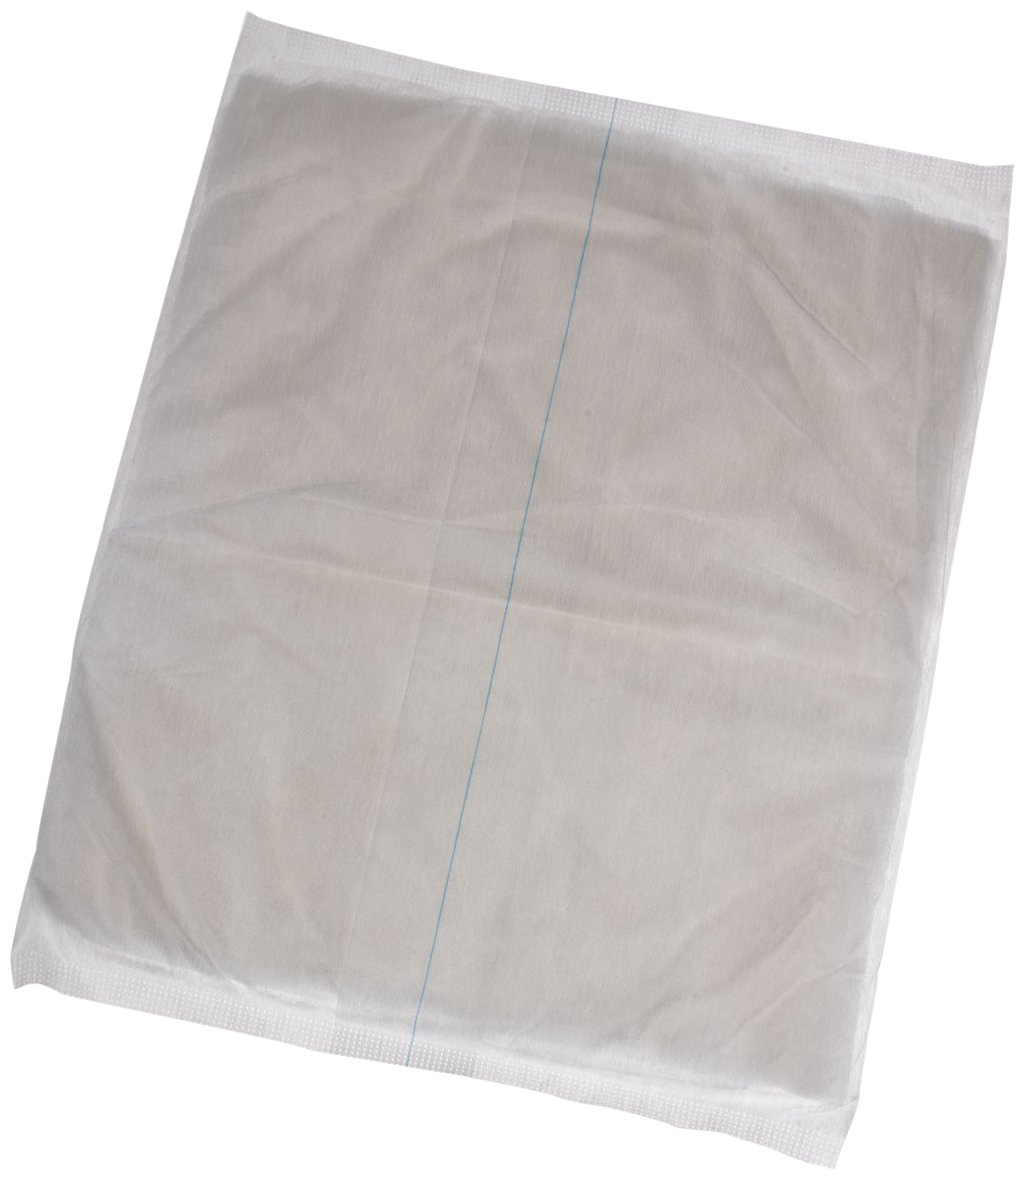 Medline NON21457 Sterile Latex Free Abdominal Pad, 12'' x 16'' (Pack of 144) by Medline